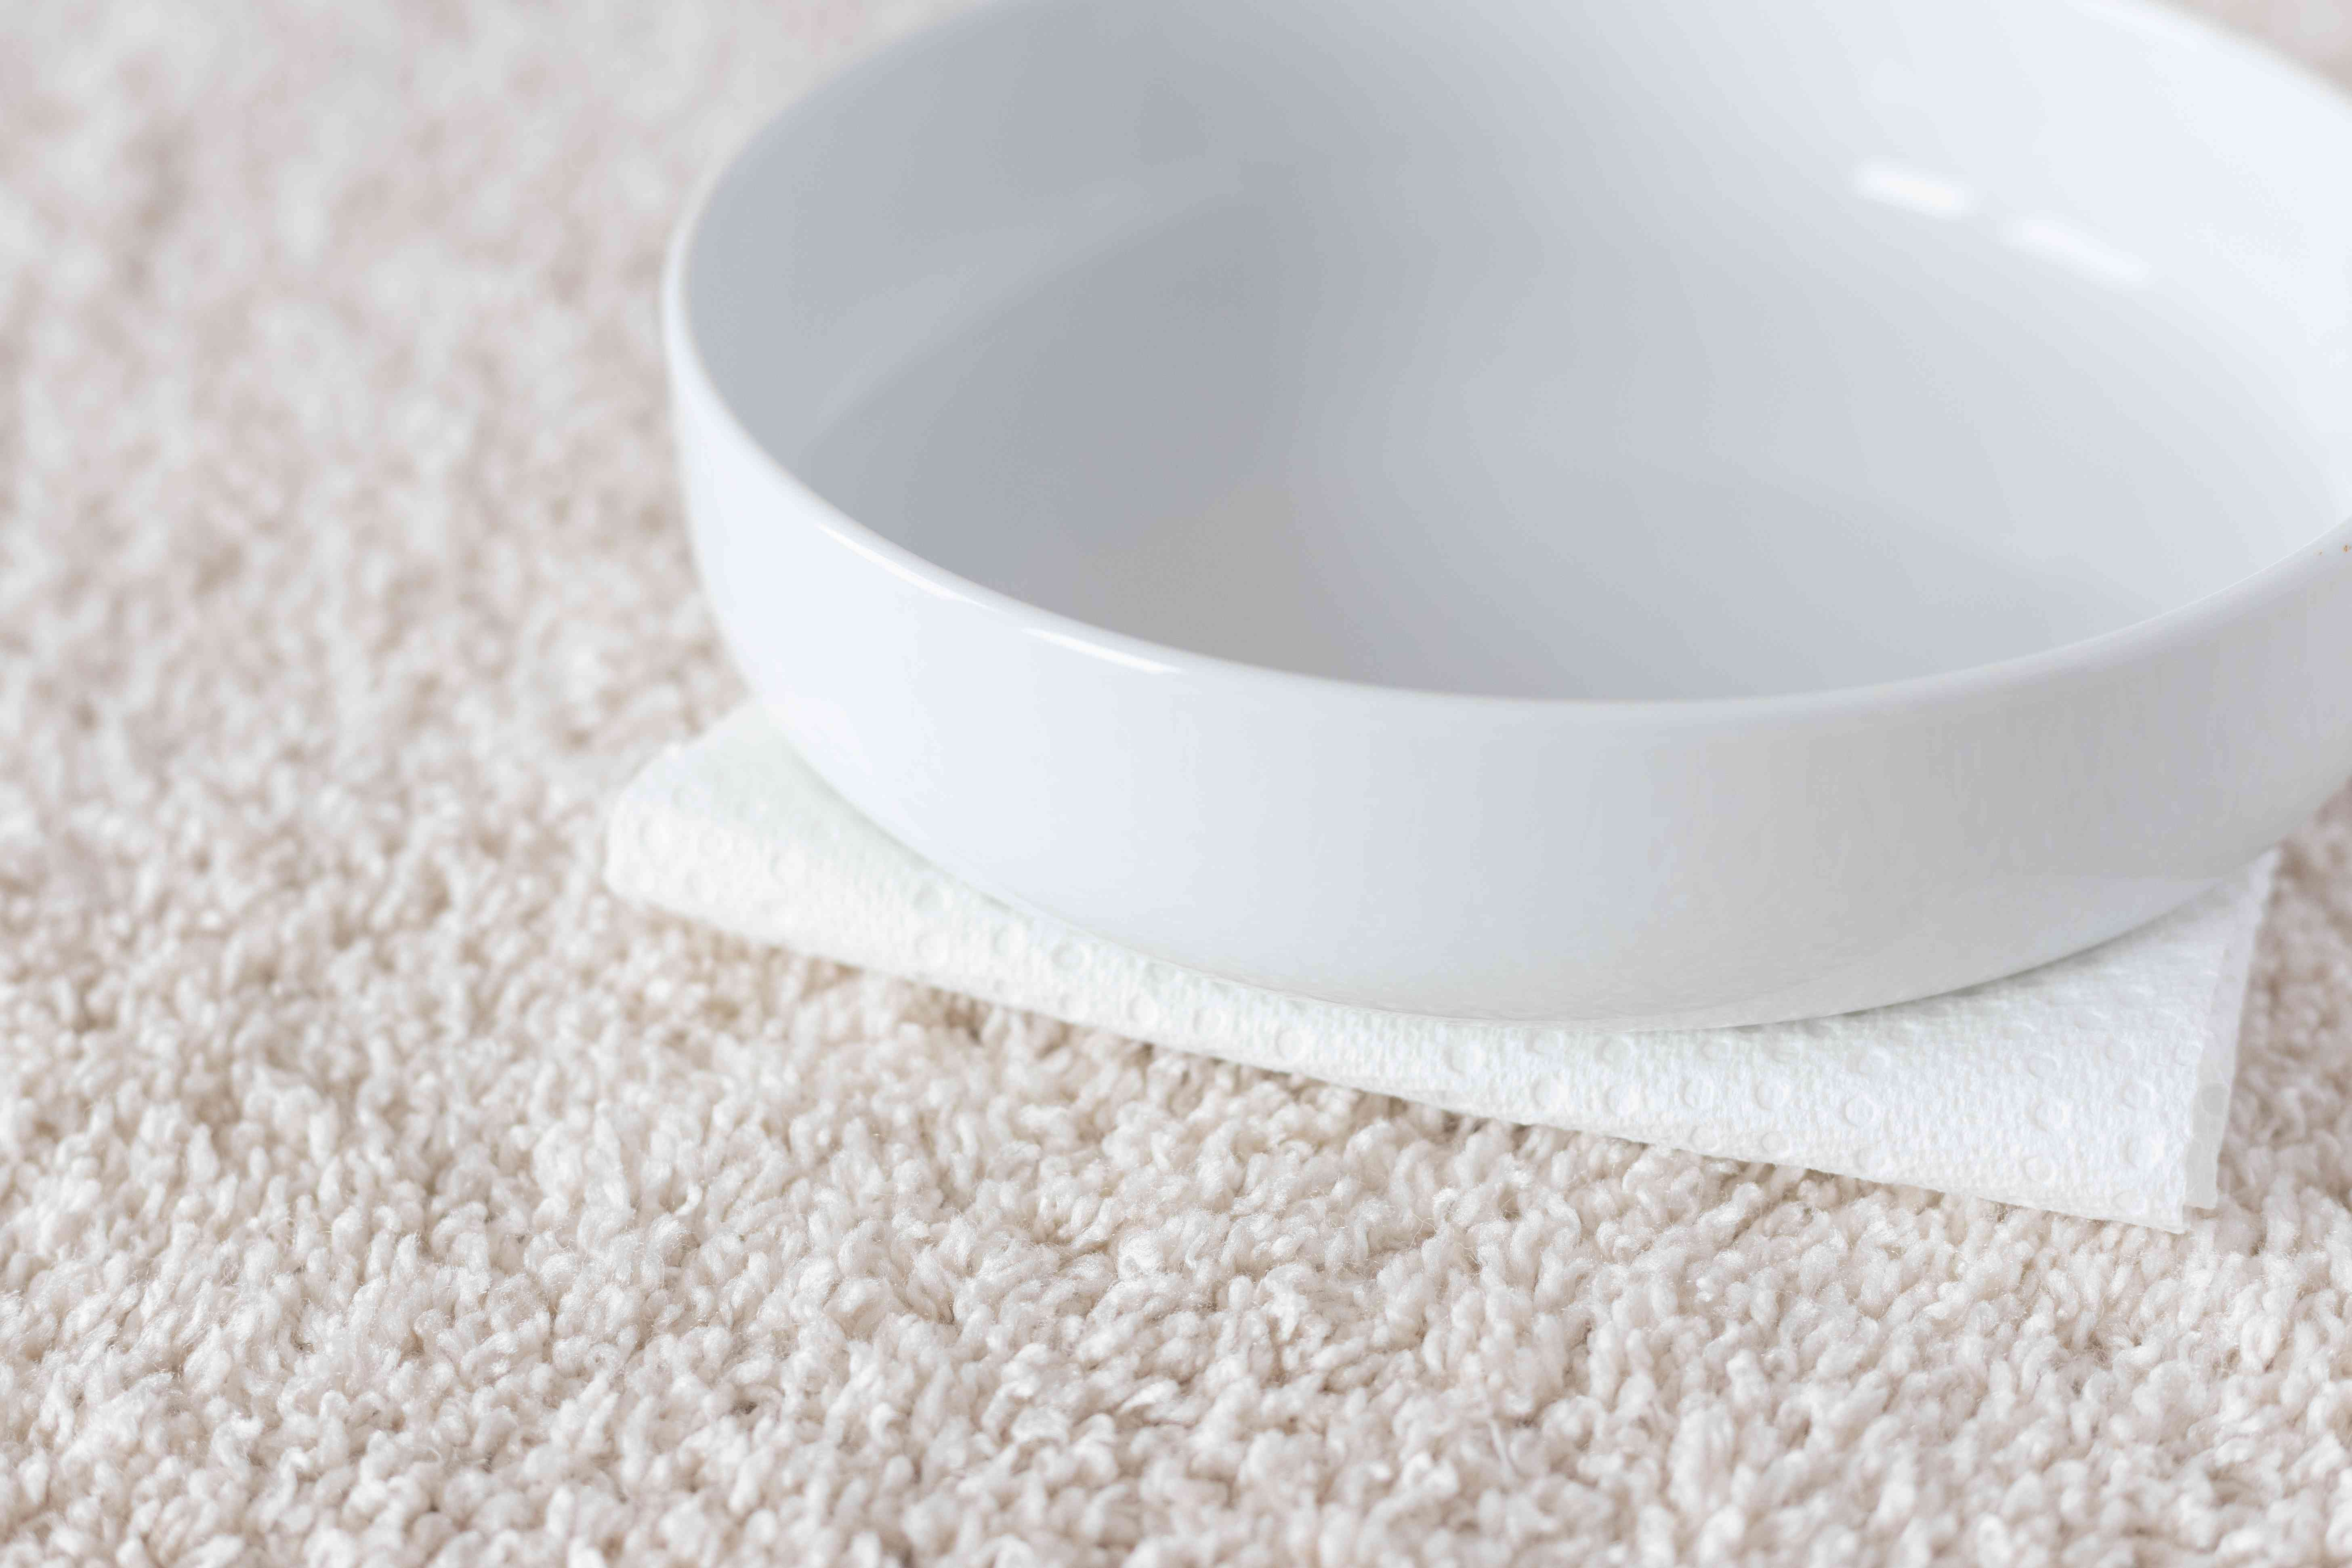 Folded paper towel weighed down by ceramic bowl on carpet